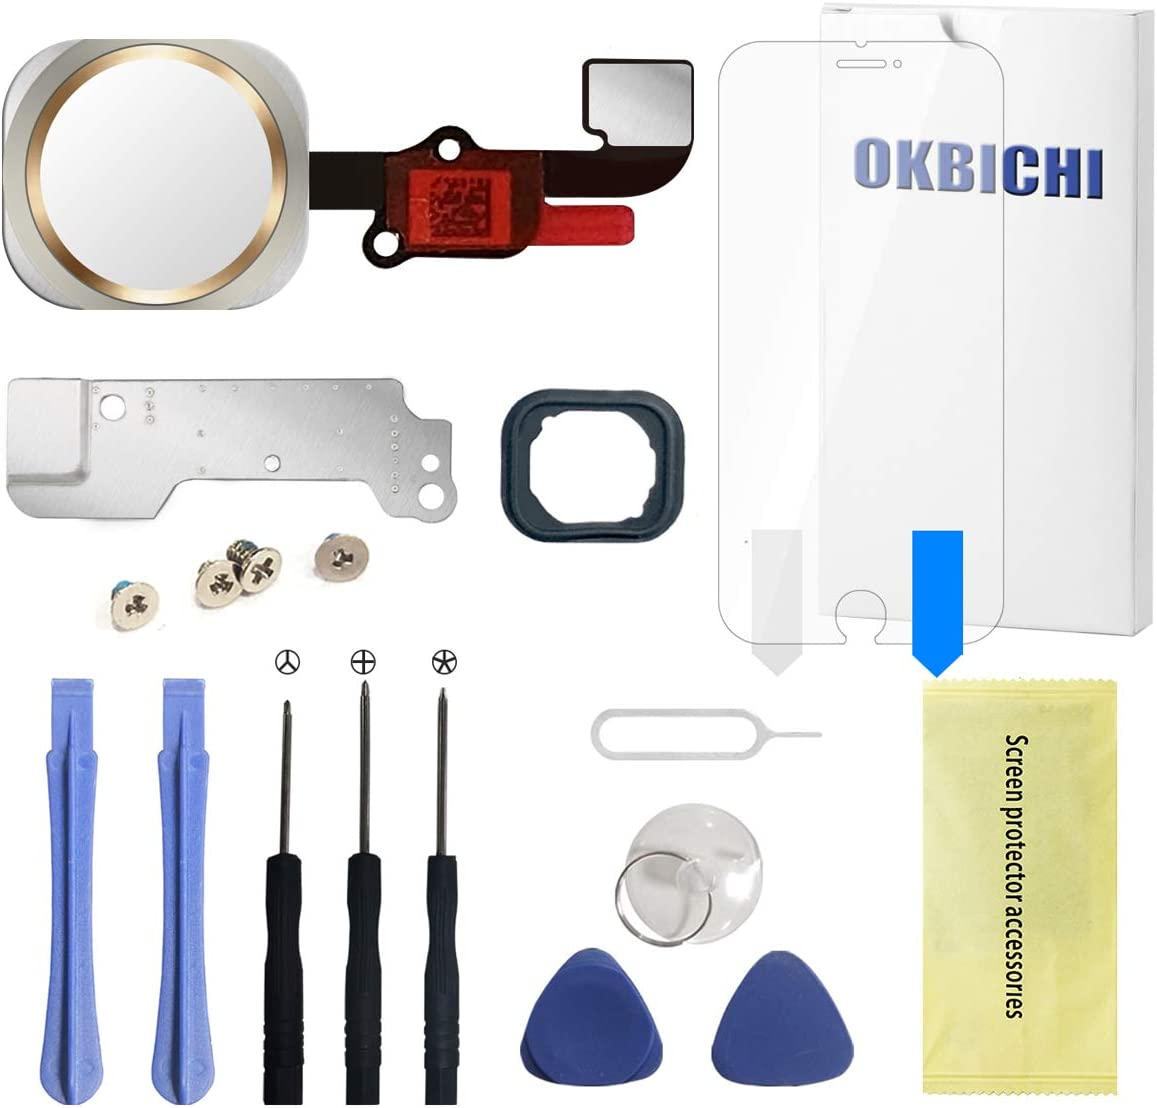 OKBICHI Home Button for iPhone 6/6 Plus(Gold) Main Key Flex Cable Assembly Replacement - Repair Tools with Screen Protector